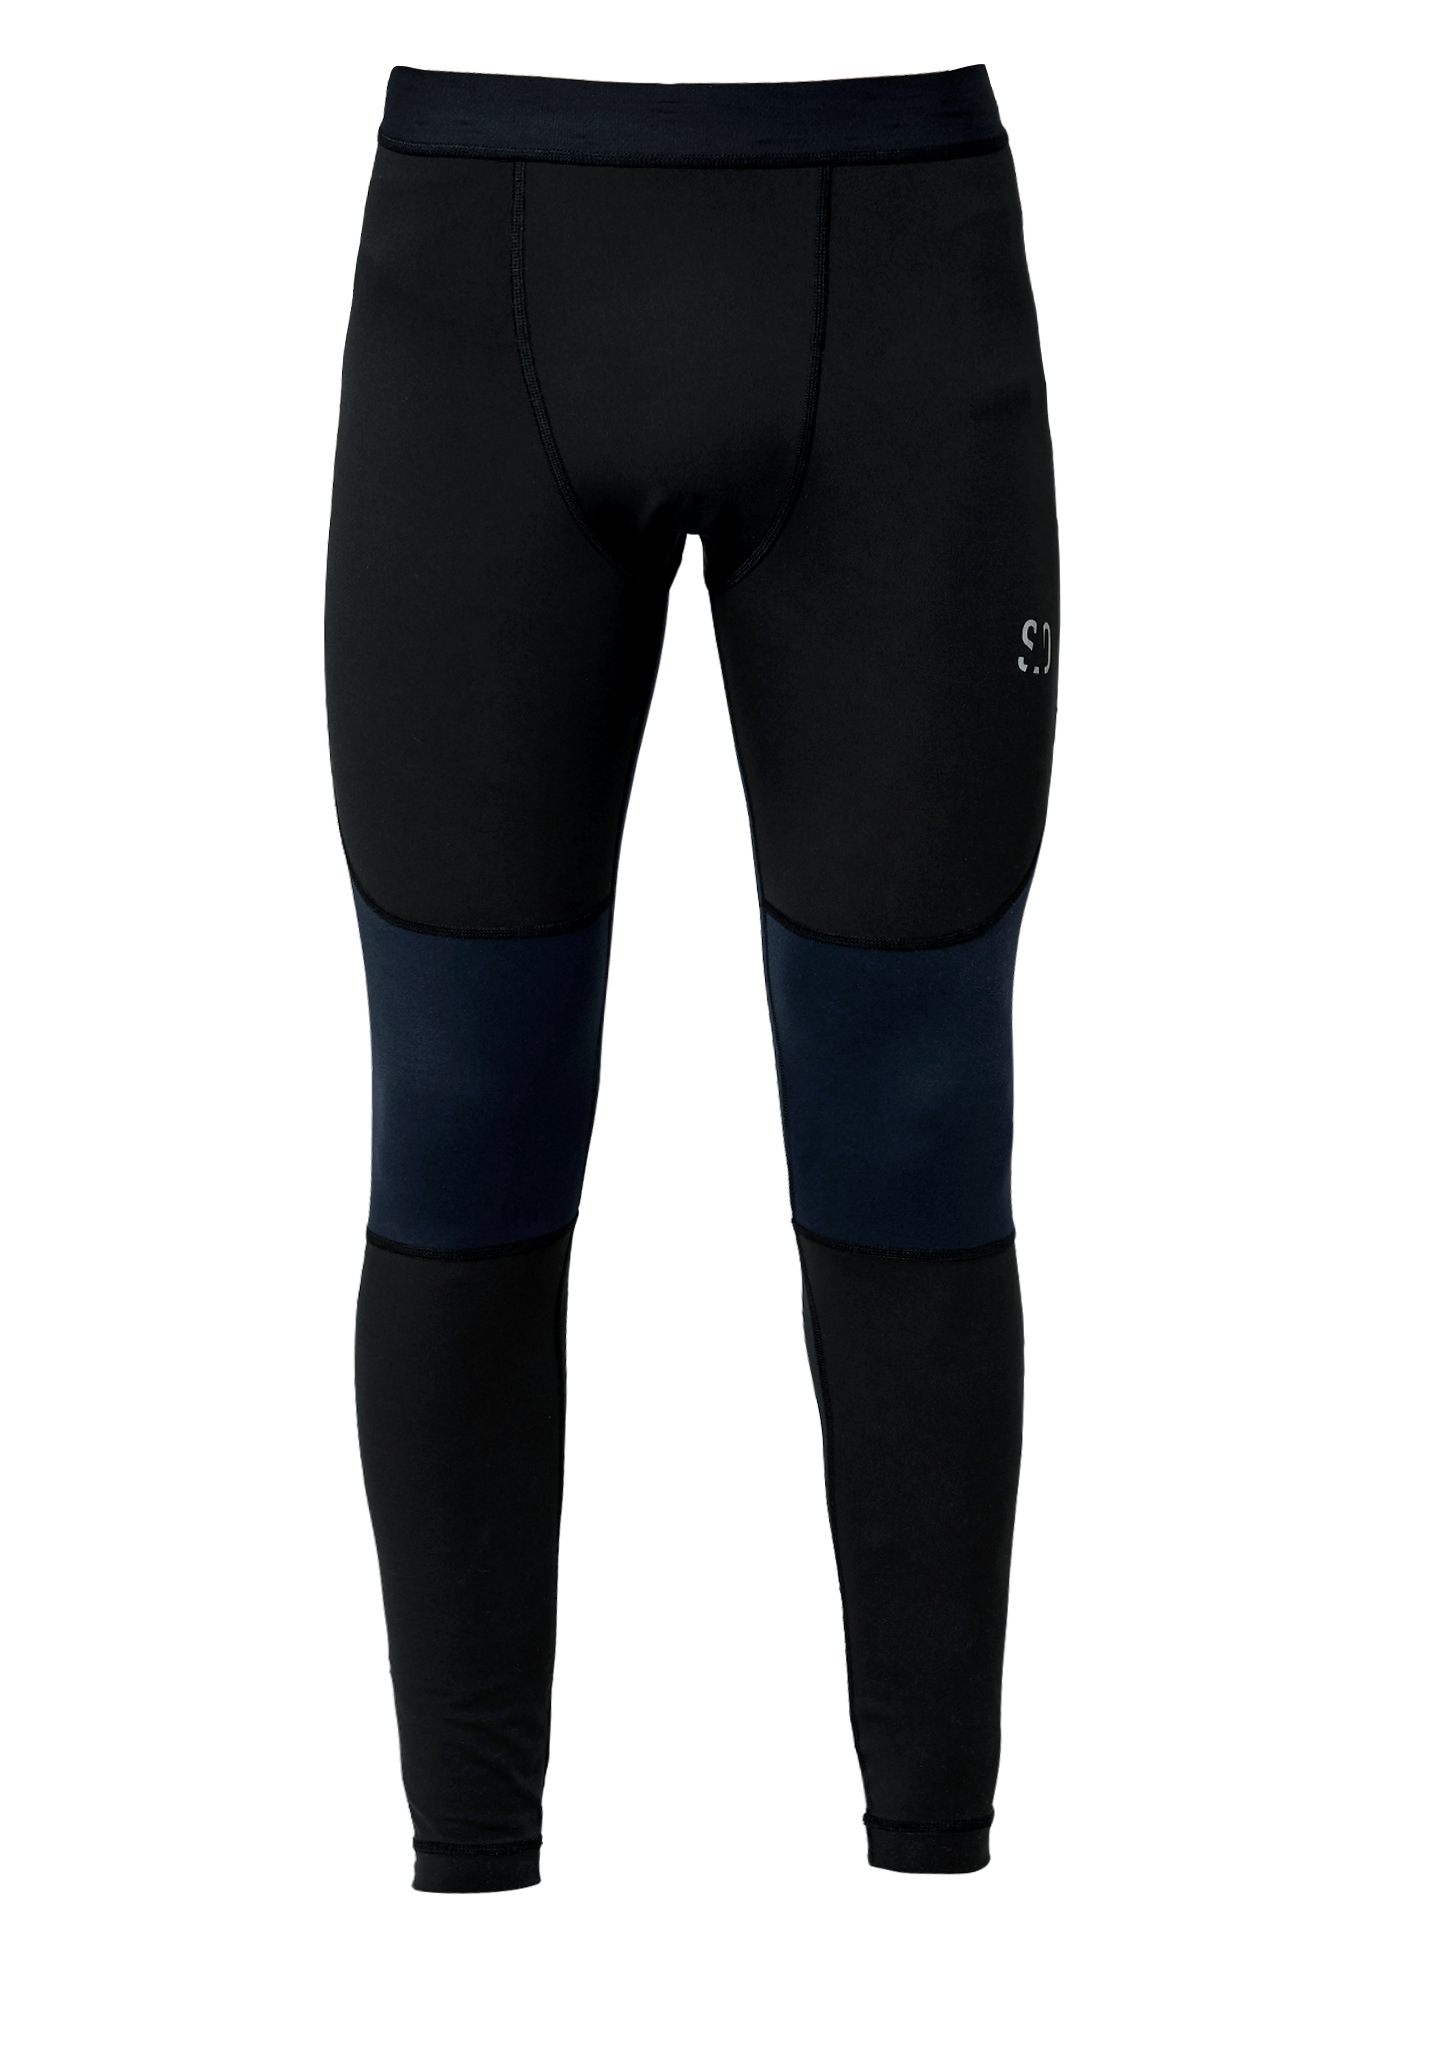 Trainings Tights | Sportbekleidung > Sporthosen > Tights | Schwarz | Obermaterial: 78% polyamid -  22% elasthan| futter: 85% polyamid -  15% elasthan | s.Oliver ACTIVE